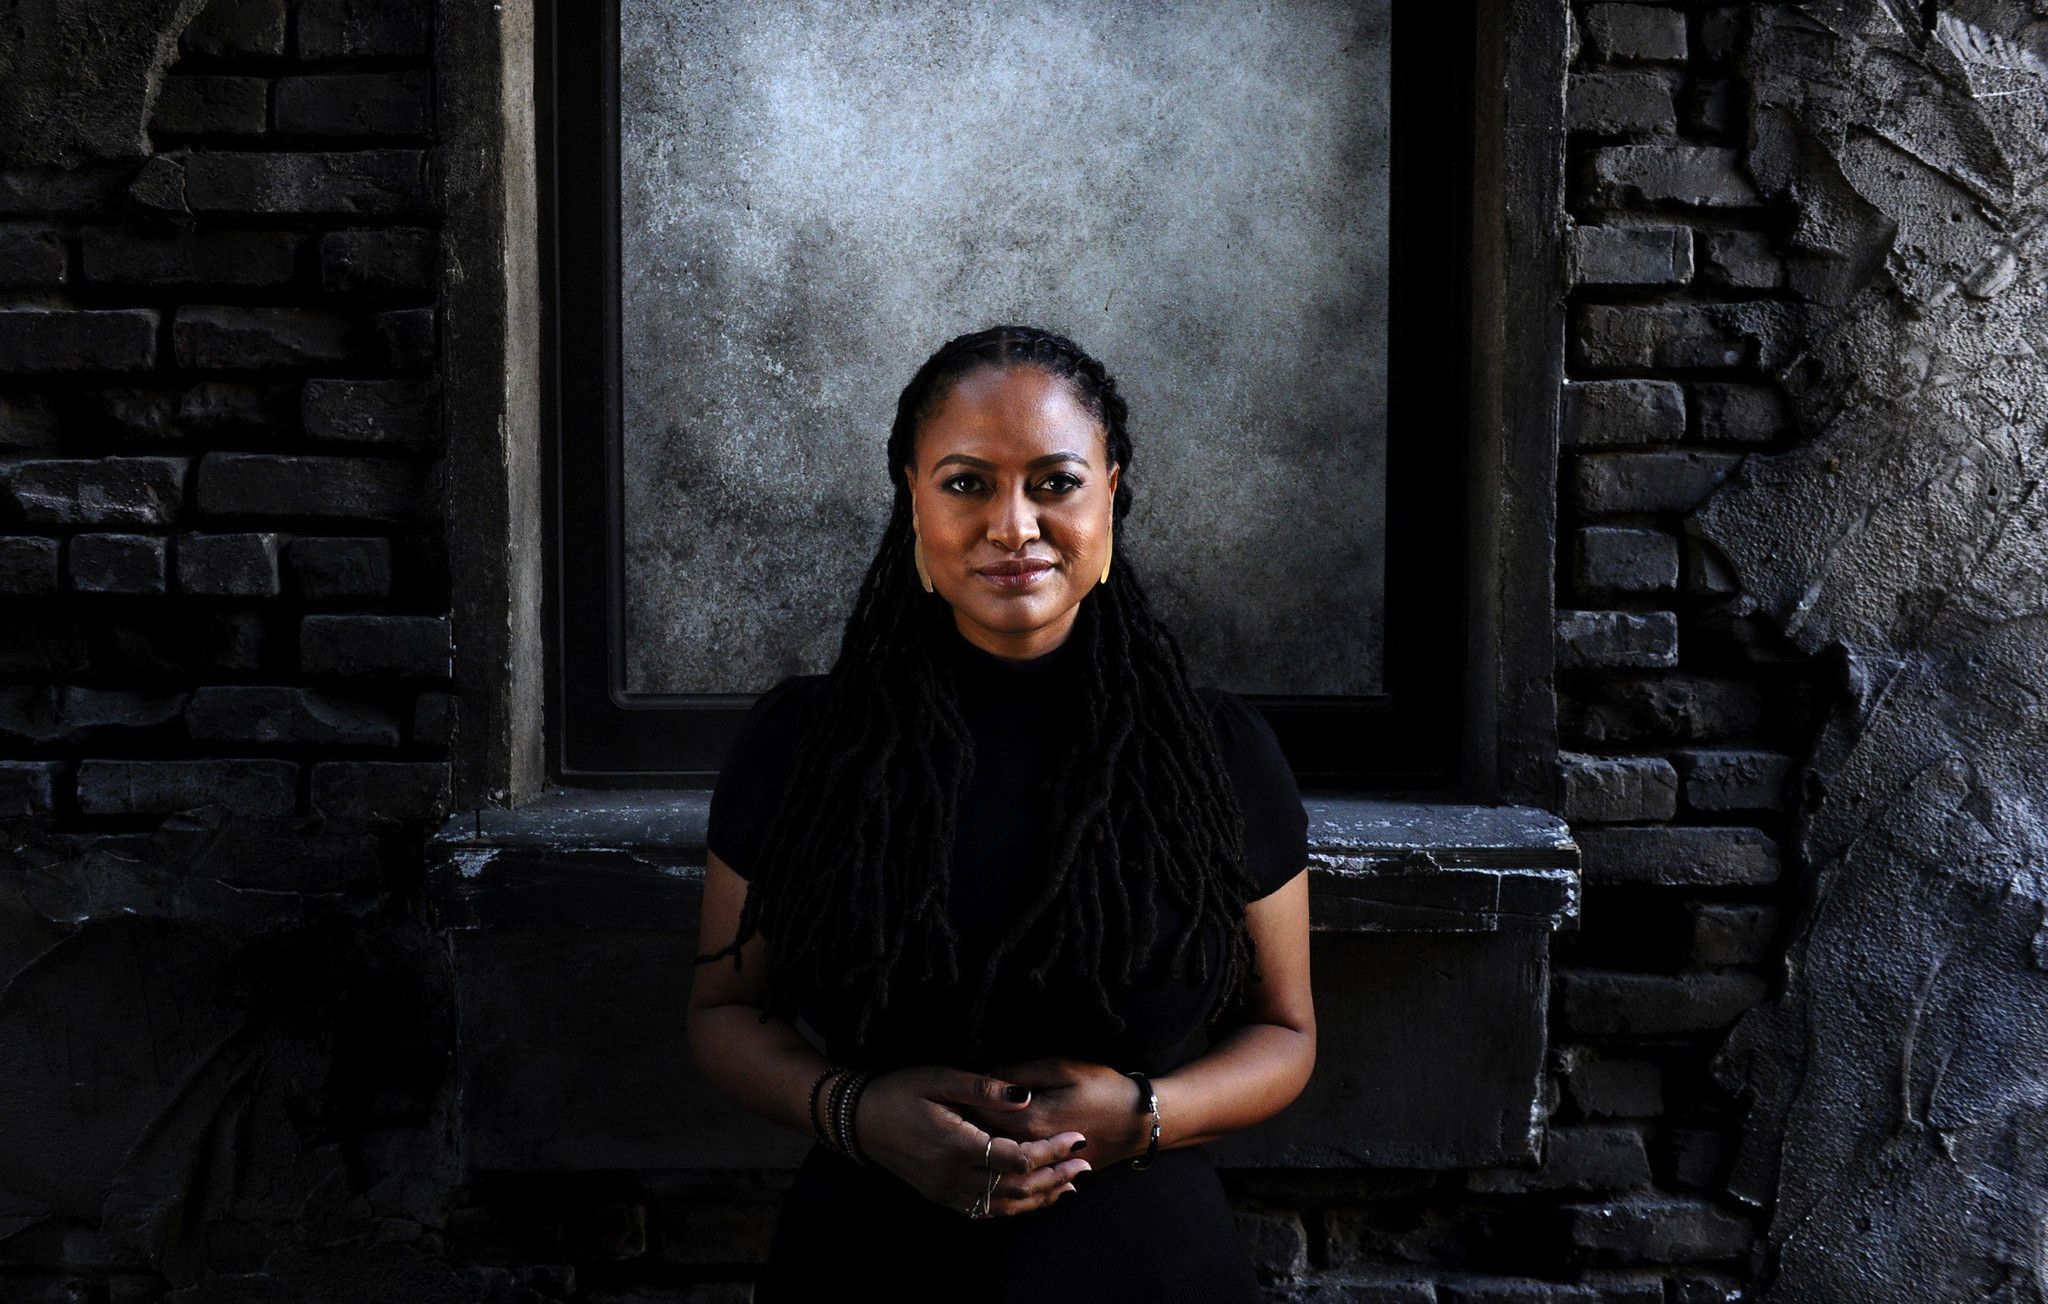 """'Selma' director Ava DuVernay talks indie film success and states, """"Sometimes you have to create your own systems, your own structures."""" We couldn't agree more!"""